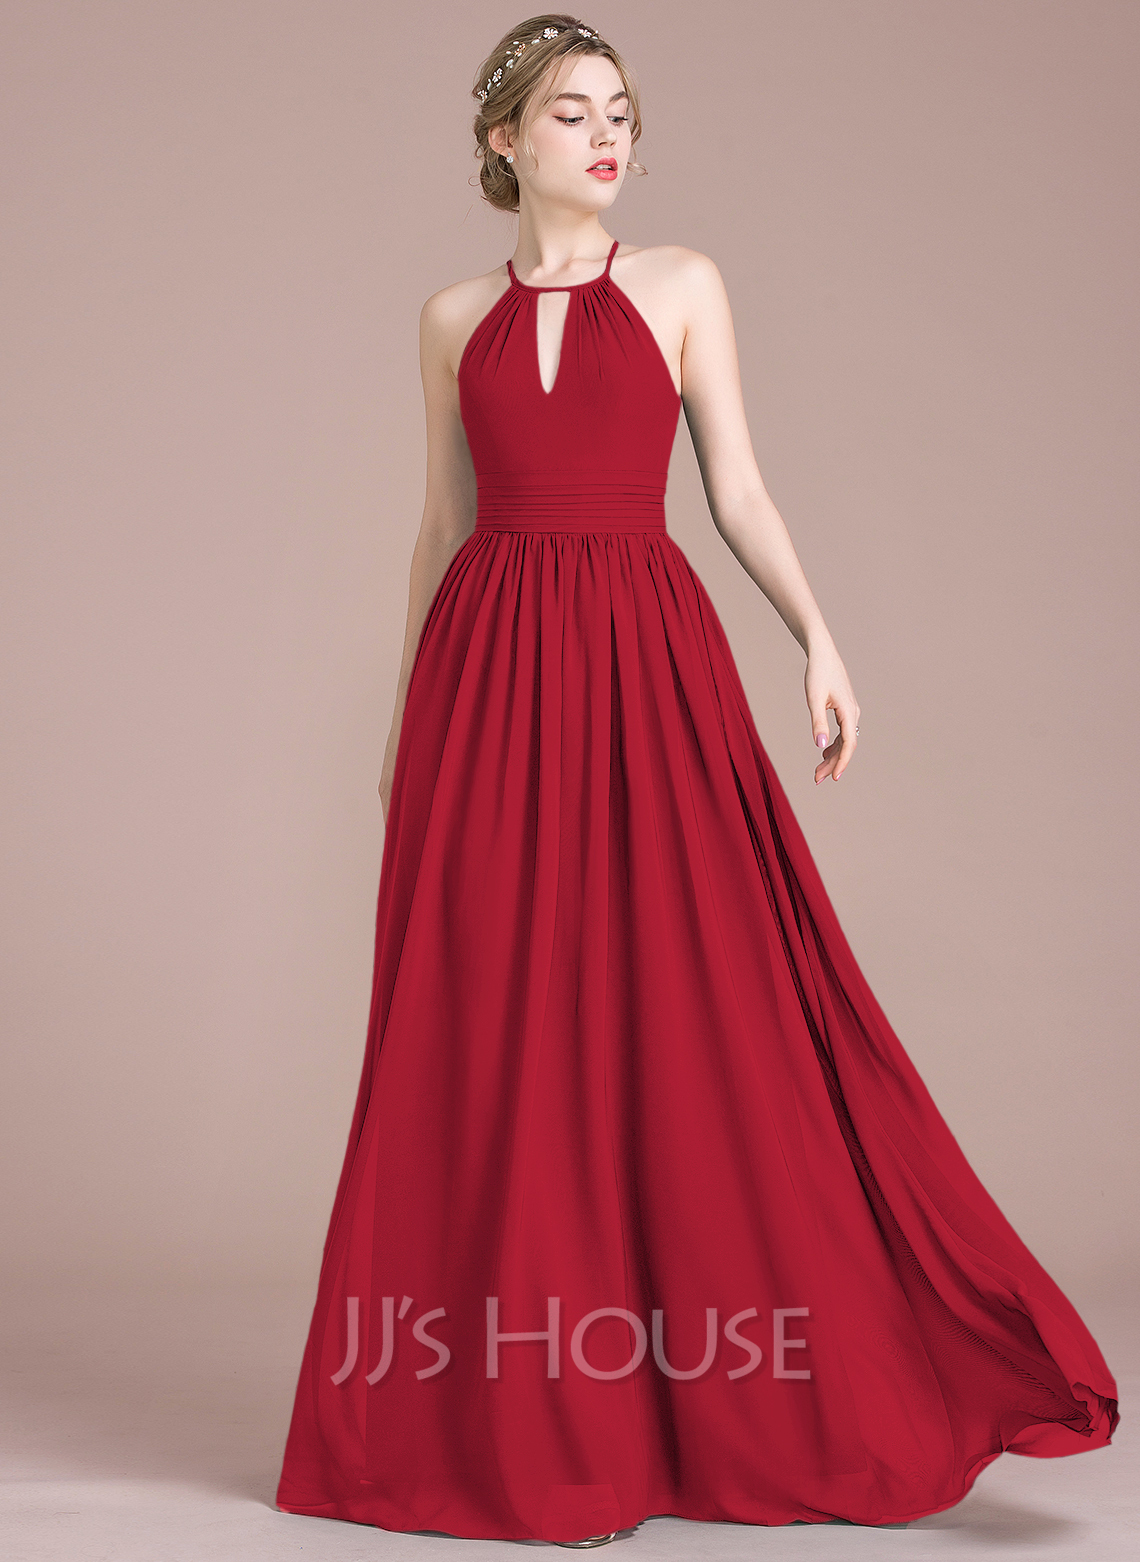 41466a22fbedf A-Line/Princess Scoop Neck Floor-Length Chiffon Bridesmaid Dress With  Ruffle. Loading zoom